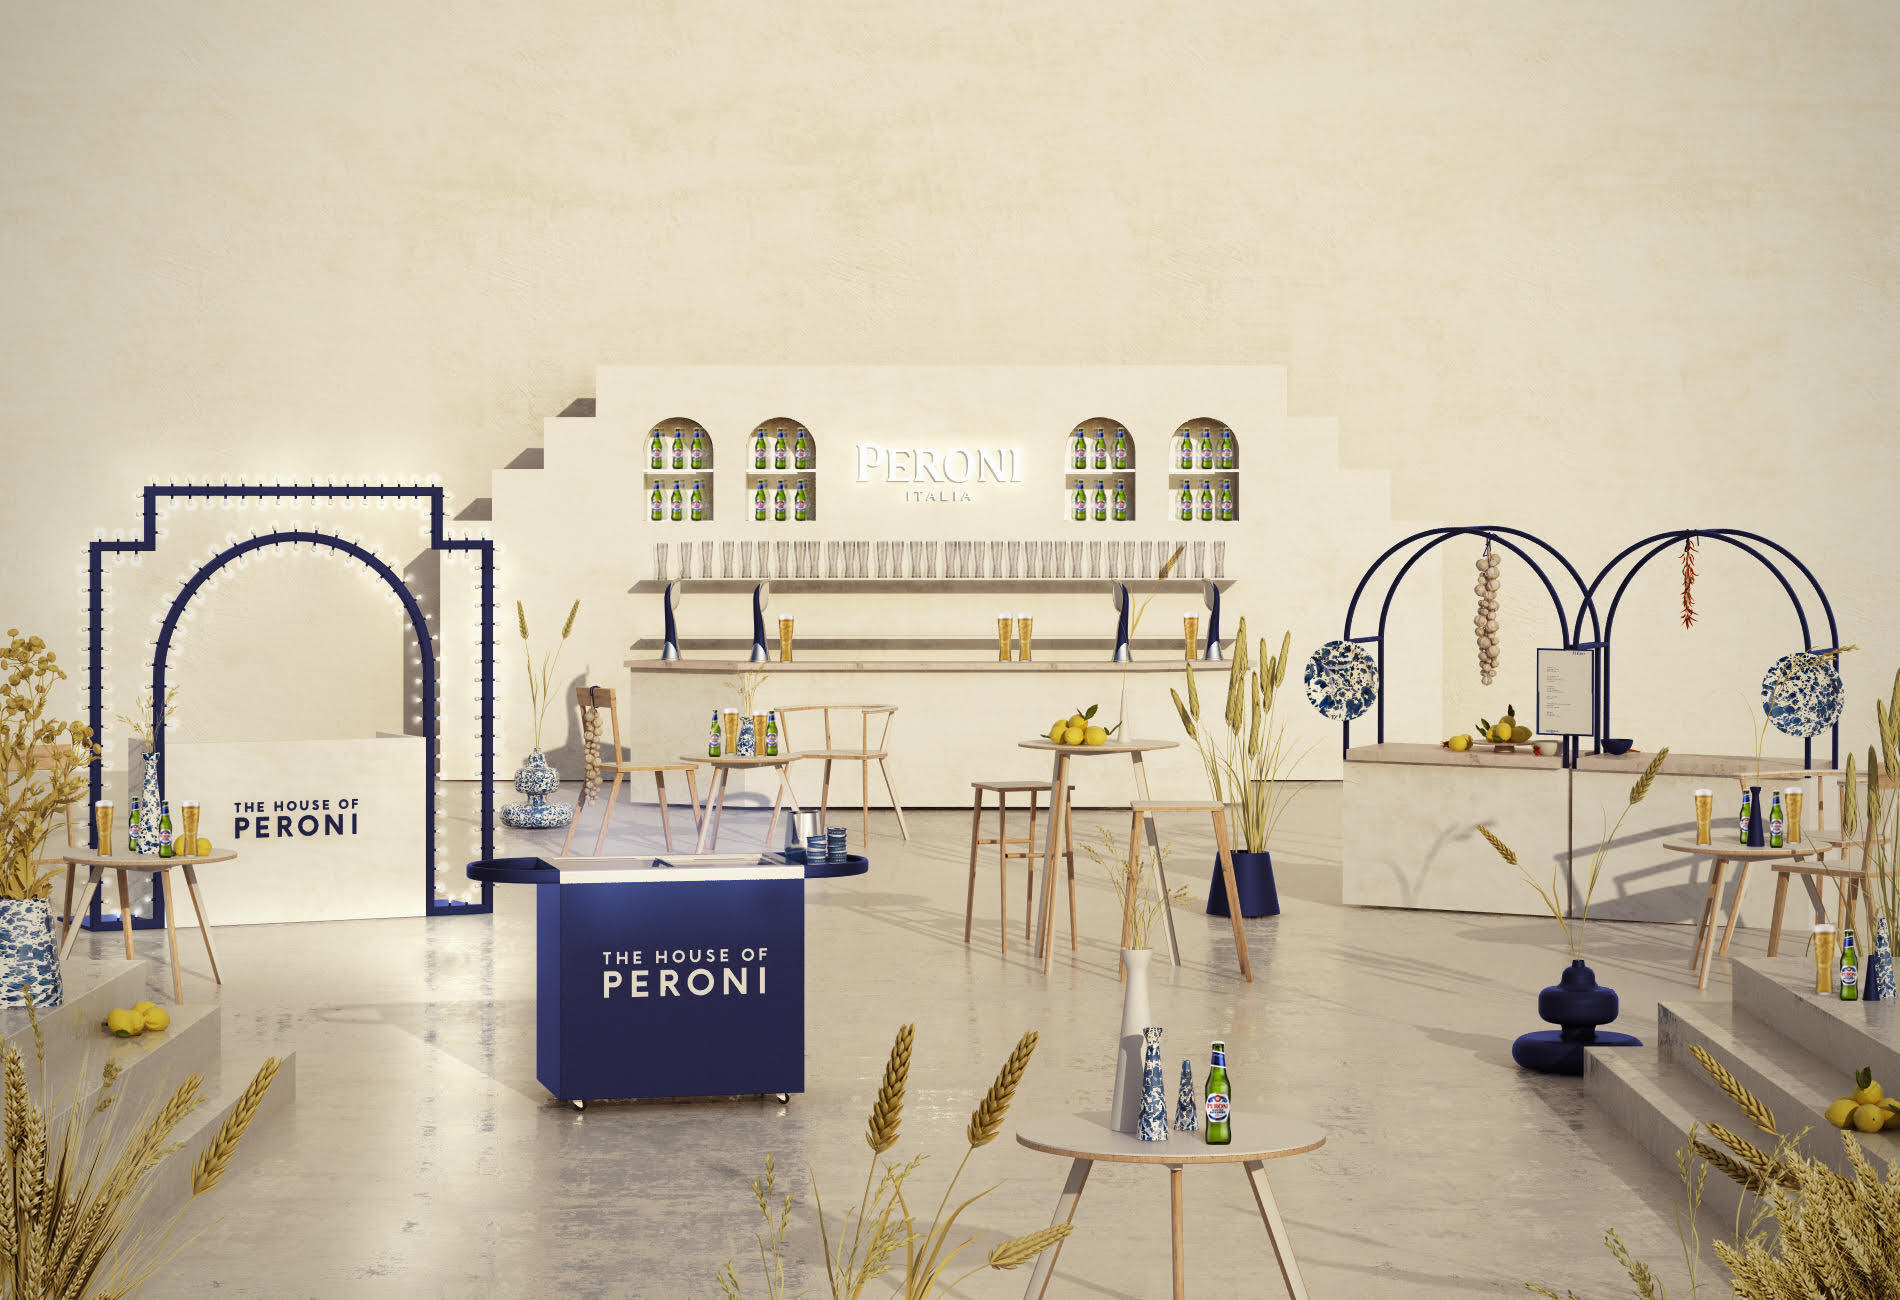 Du 24 au 26 mai, la marque de bière Peroni installe à Paris The House of Peroni